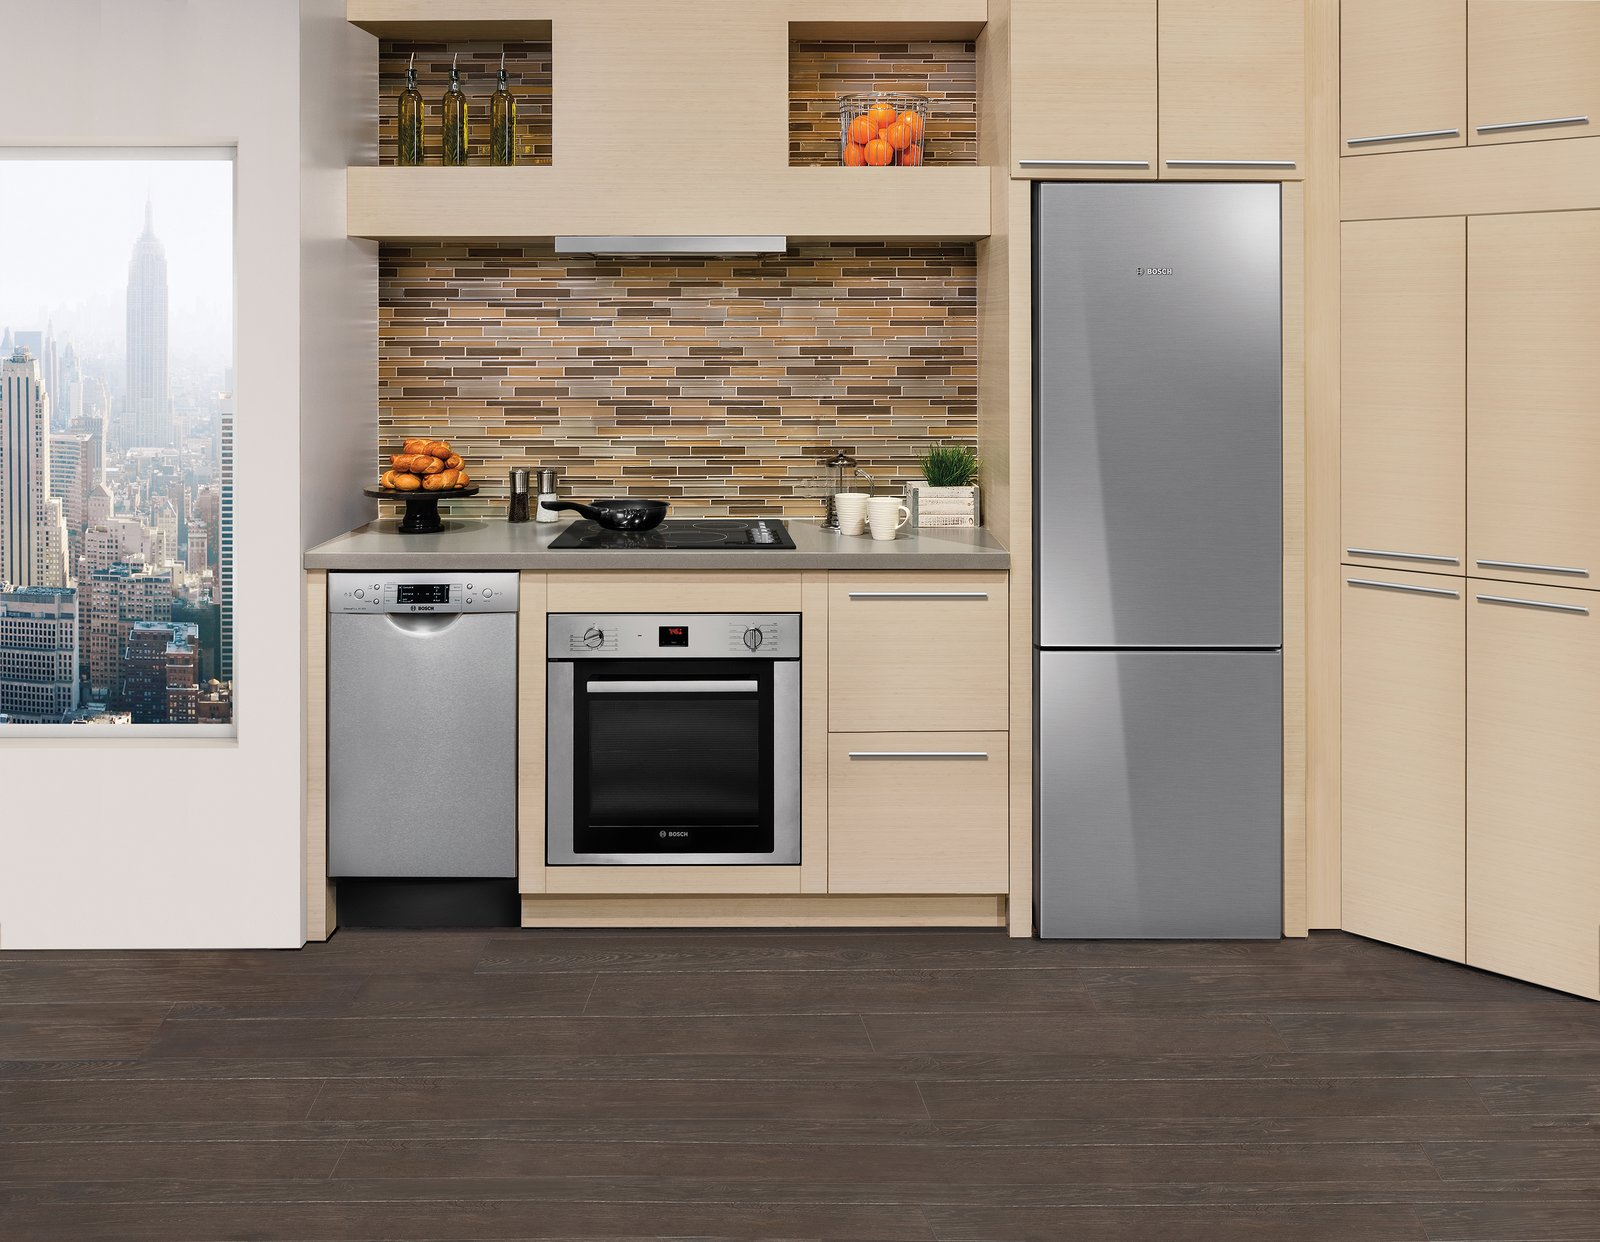 Design ideas we love by penguin basements dwell - Tall refrigerators small spaces property ...